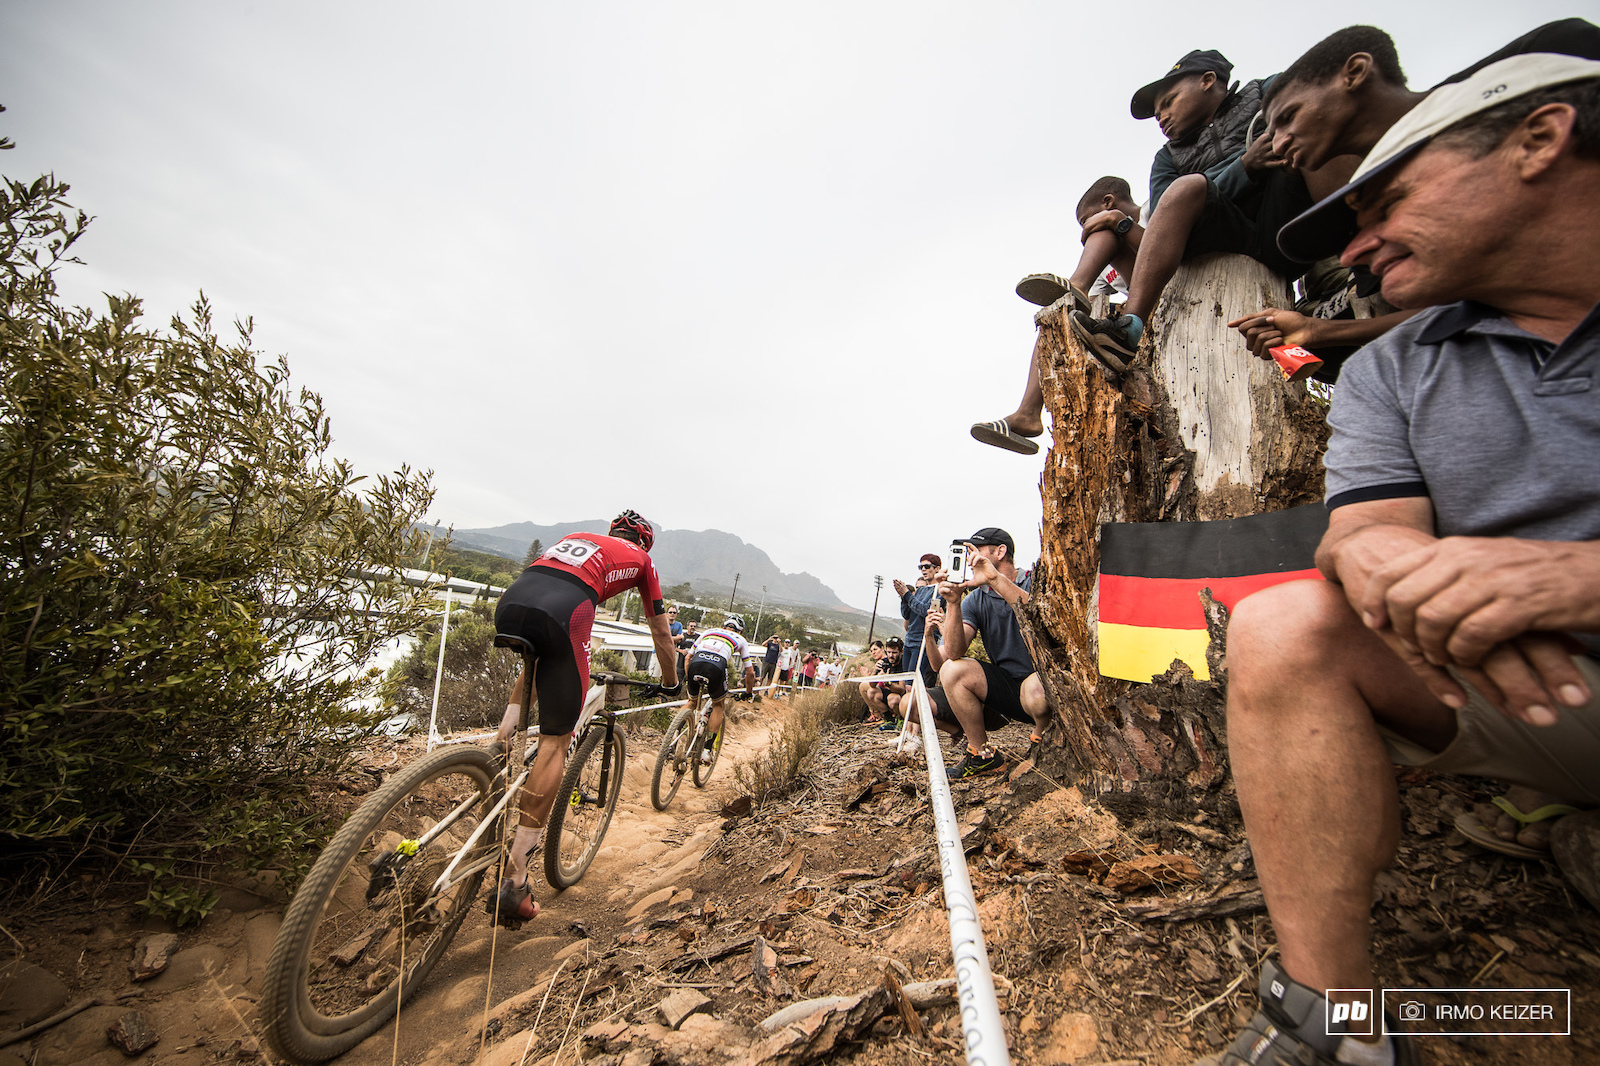 The battle of the day Gaze versus Schurter.